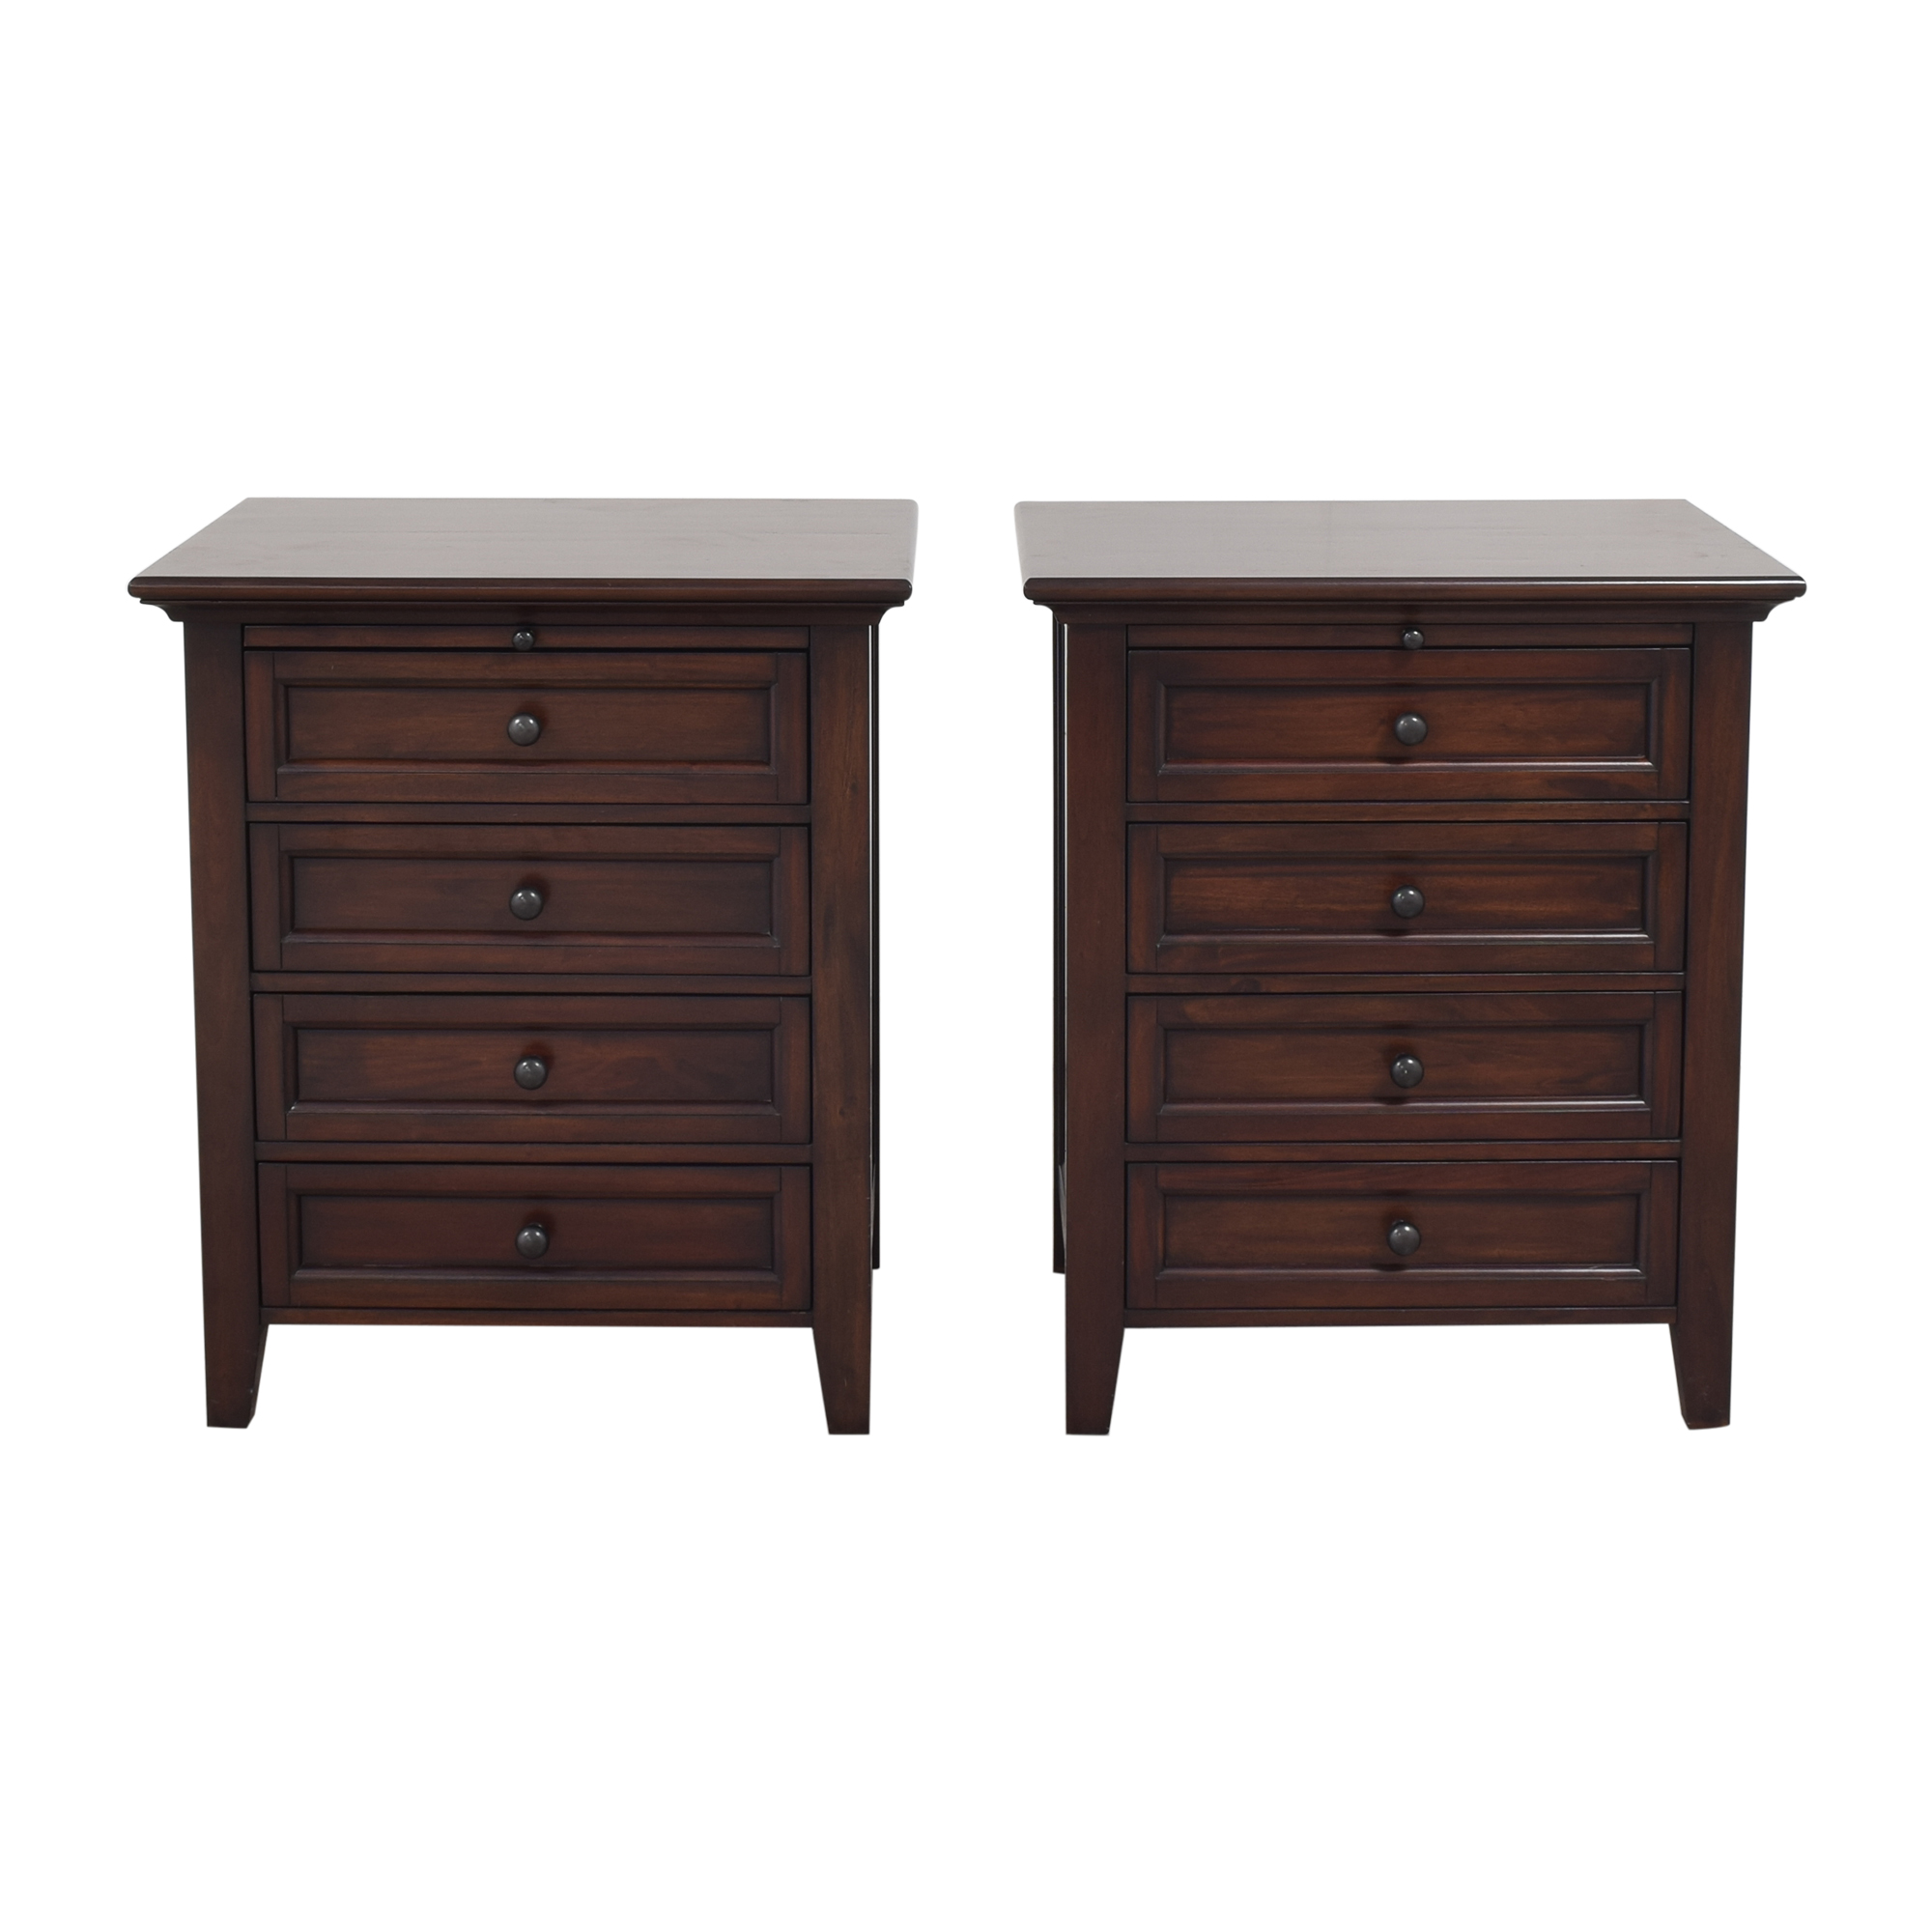 Pottery Barn Pottery Barn Hudson Four Drawer Nightstands dimensions